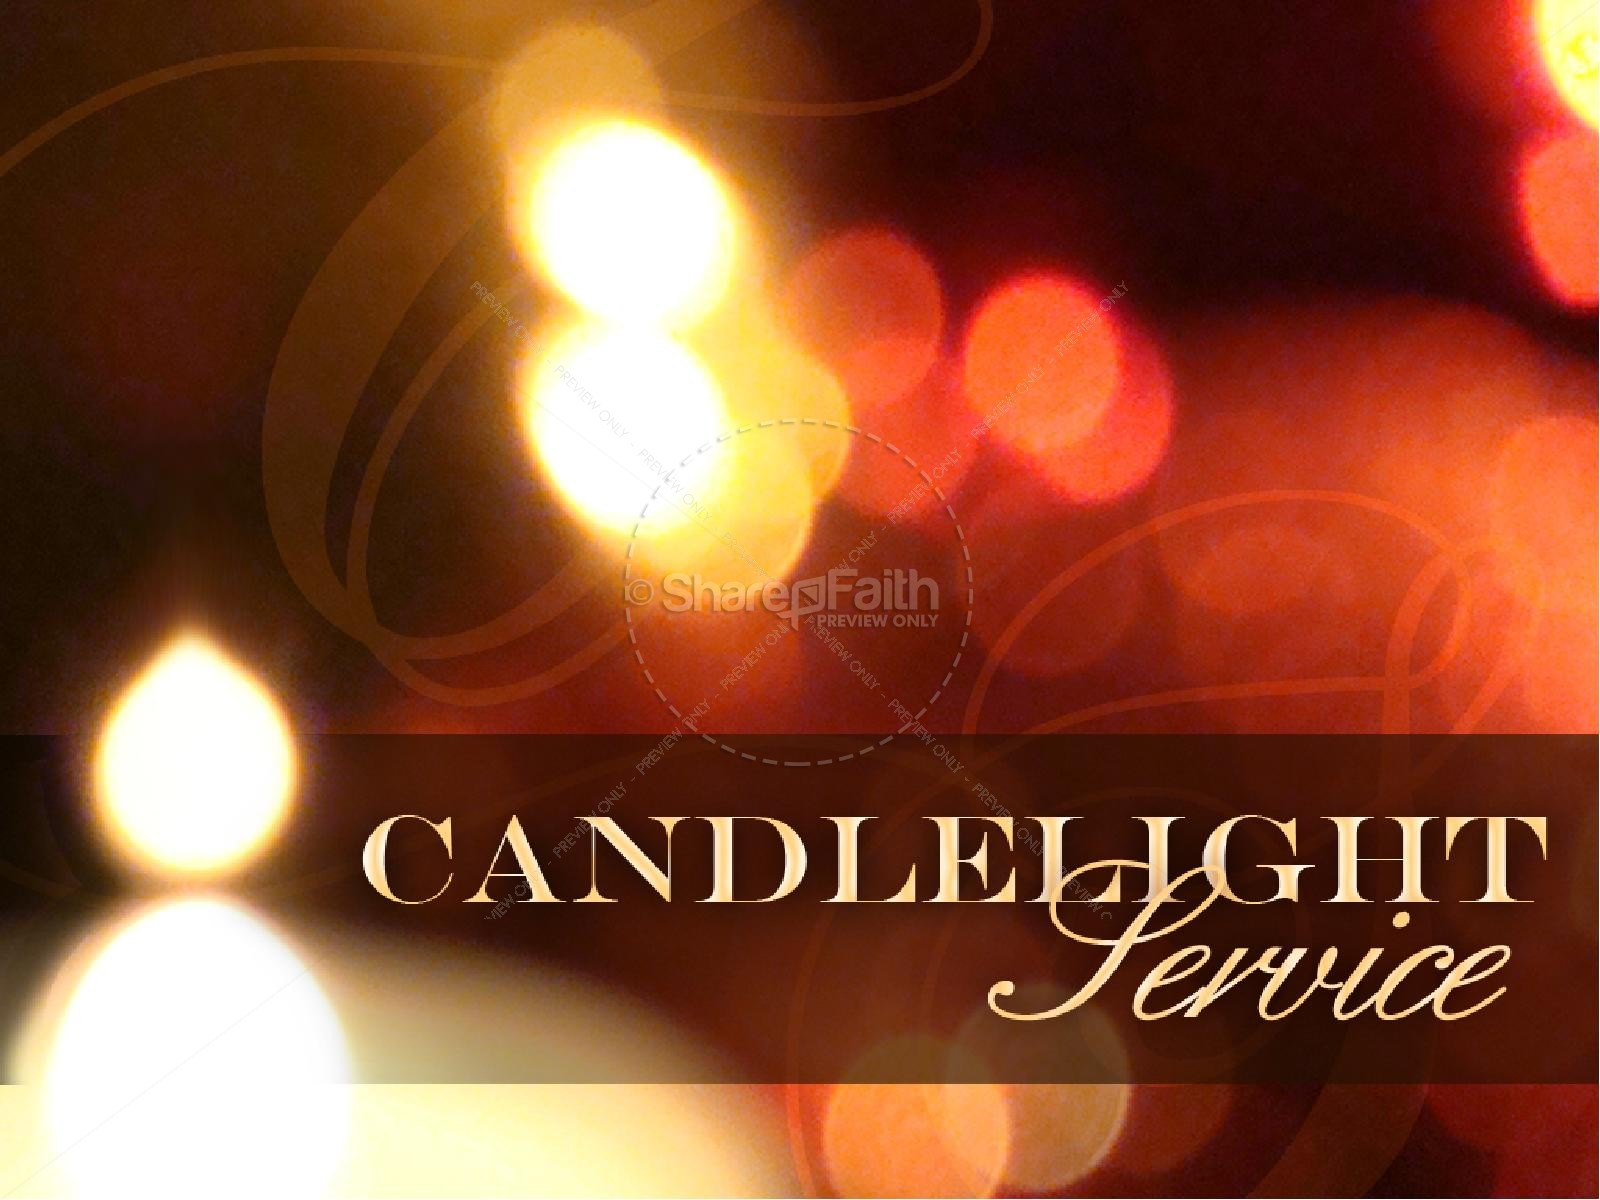 Candlelight Service PowerPoint | Christmas PowerPoints